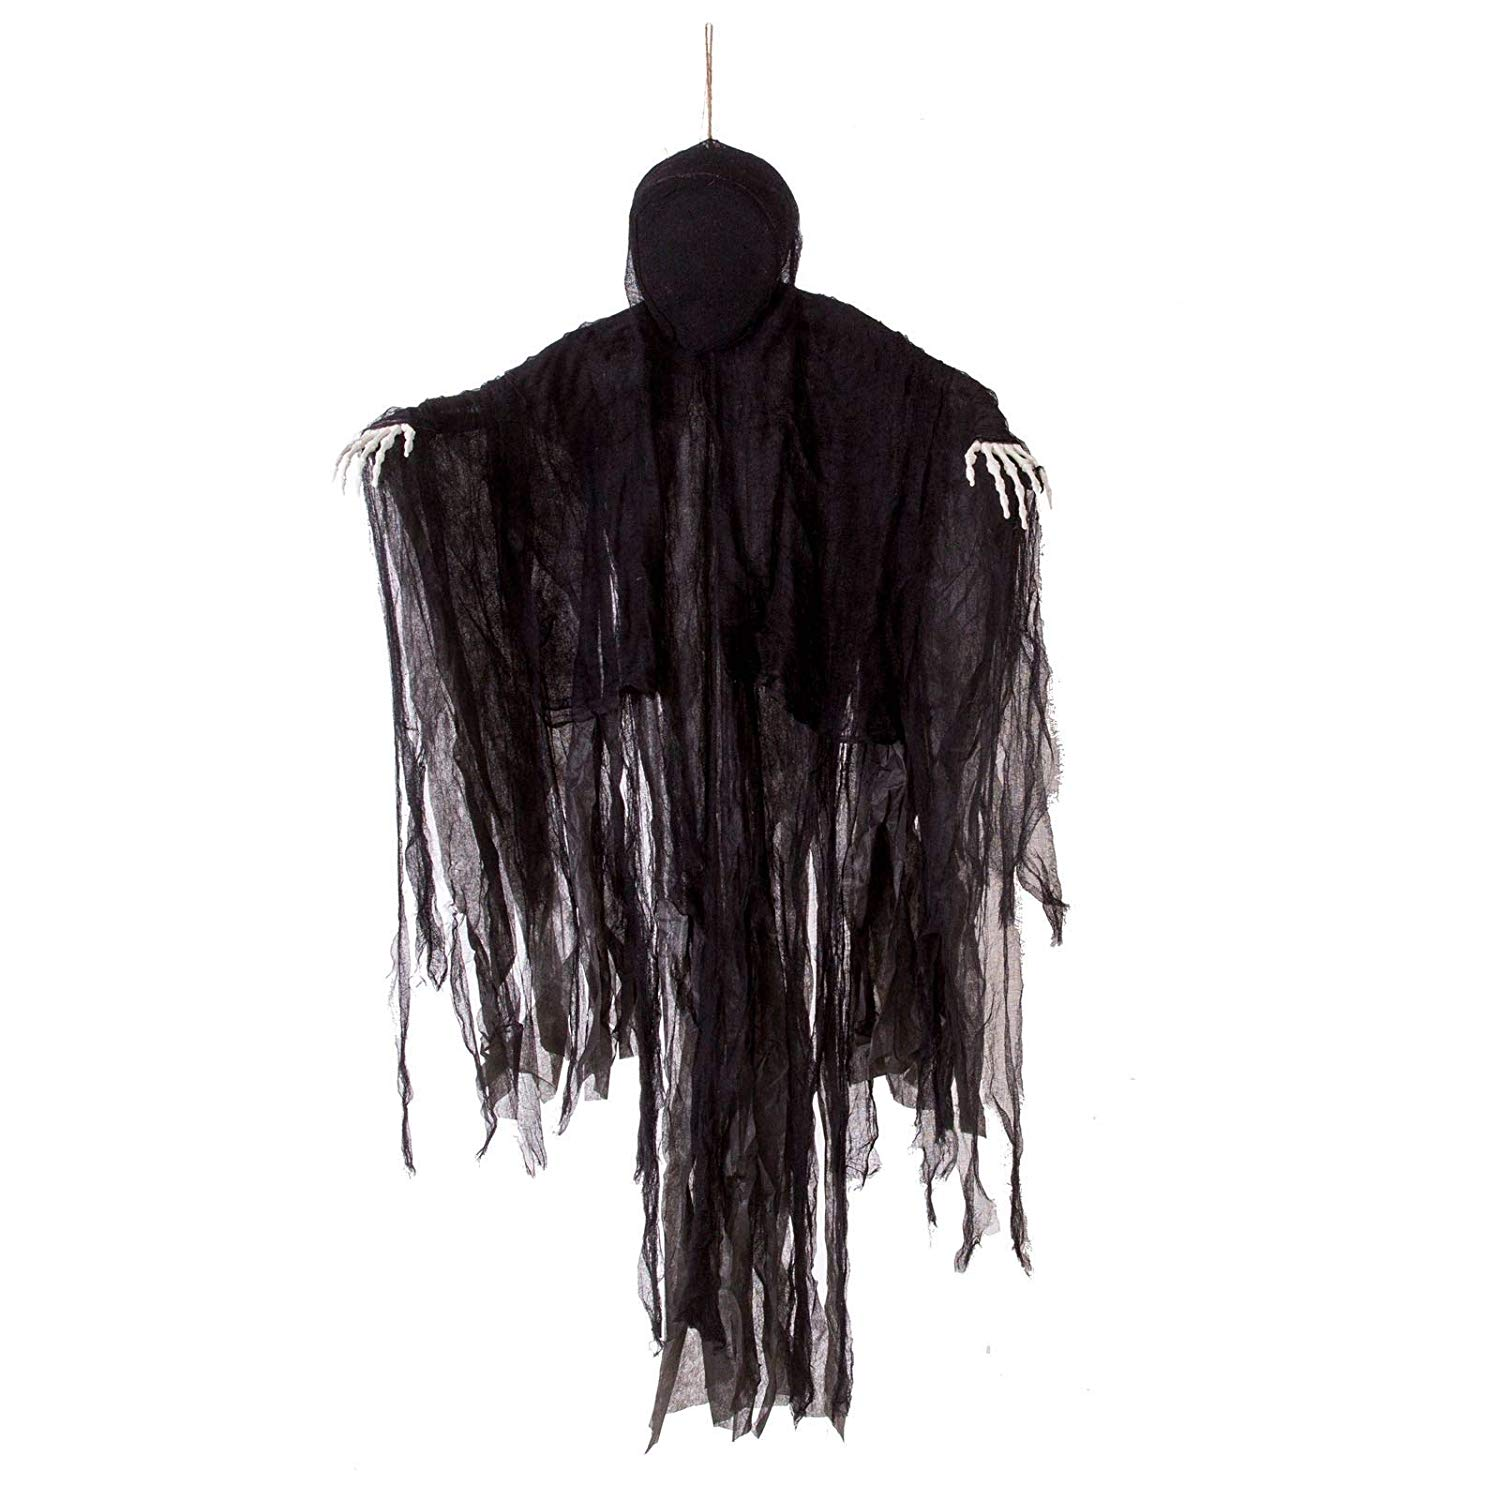 5 Ft Dark Hanging Grim Reaper, Faceless Ghost in Black Horror Robe for Best Halloween Hanging Decorations